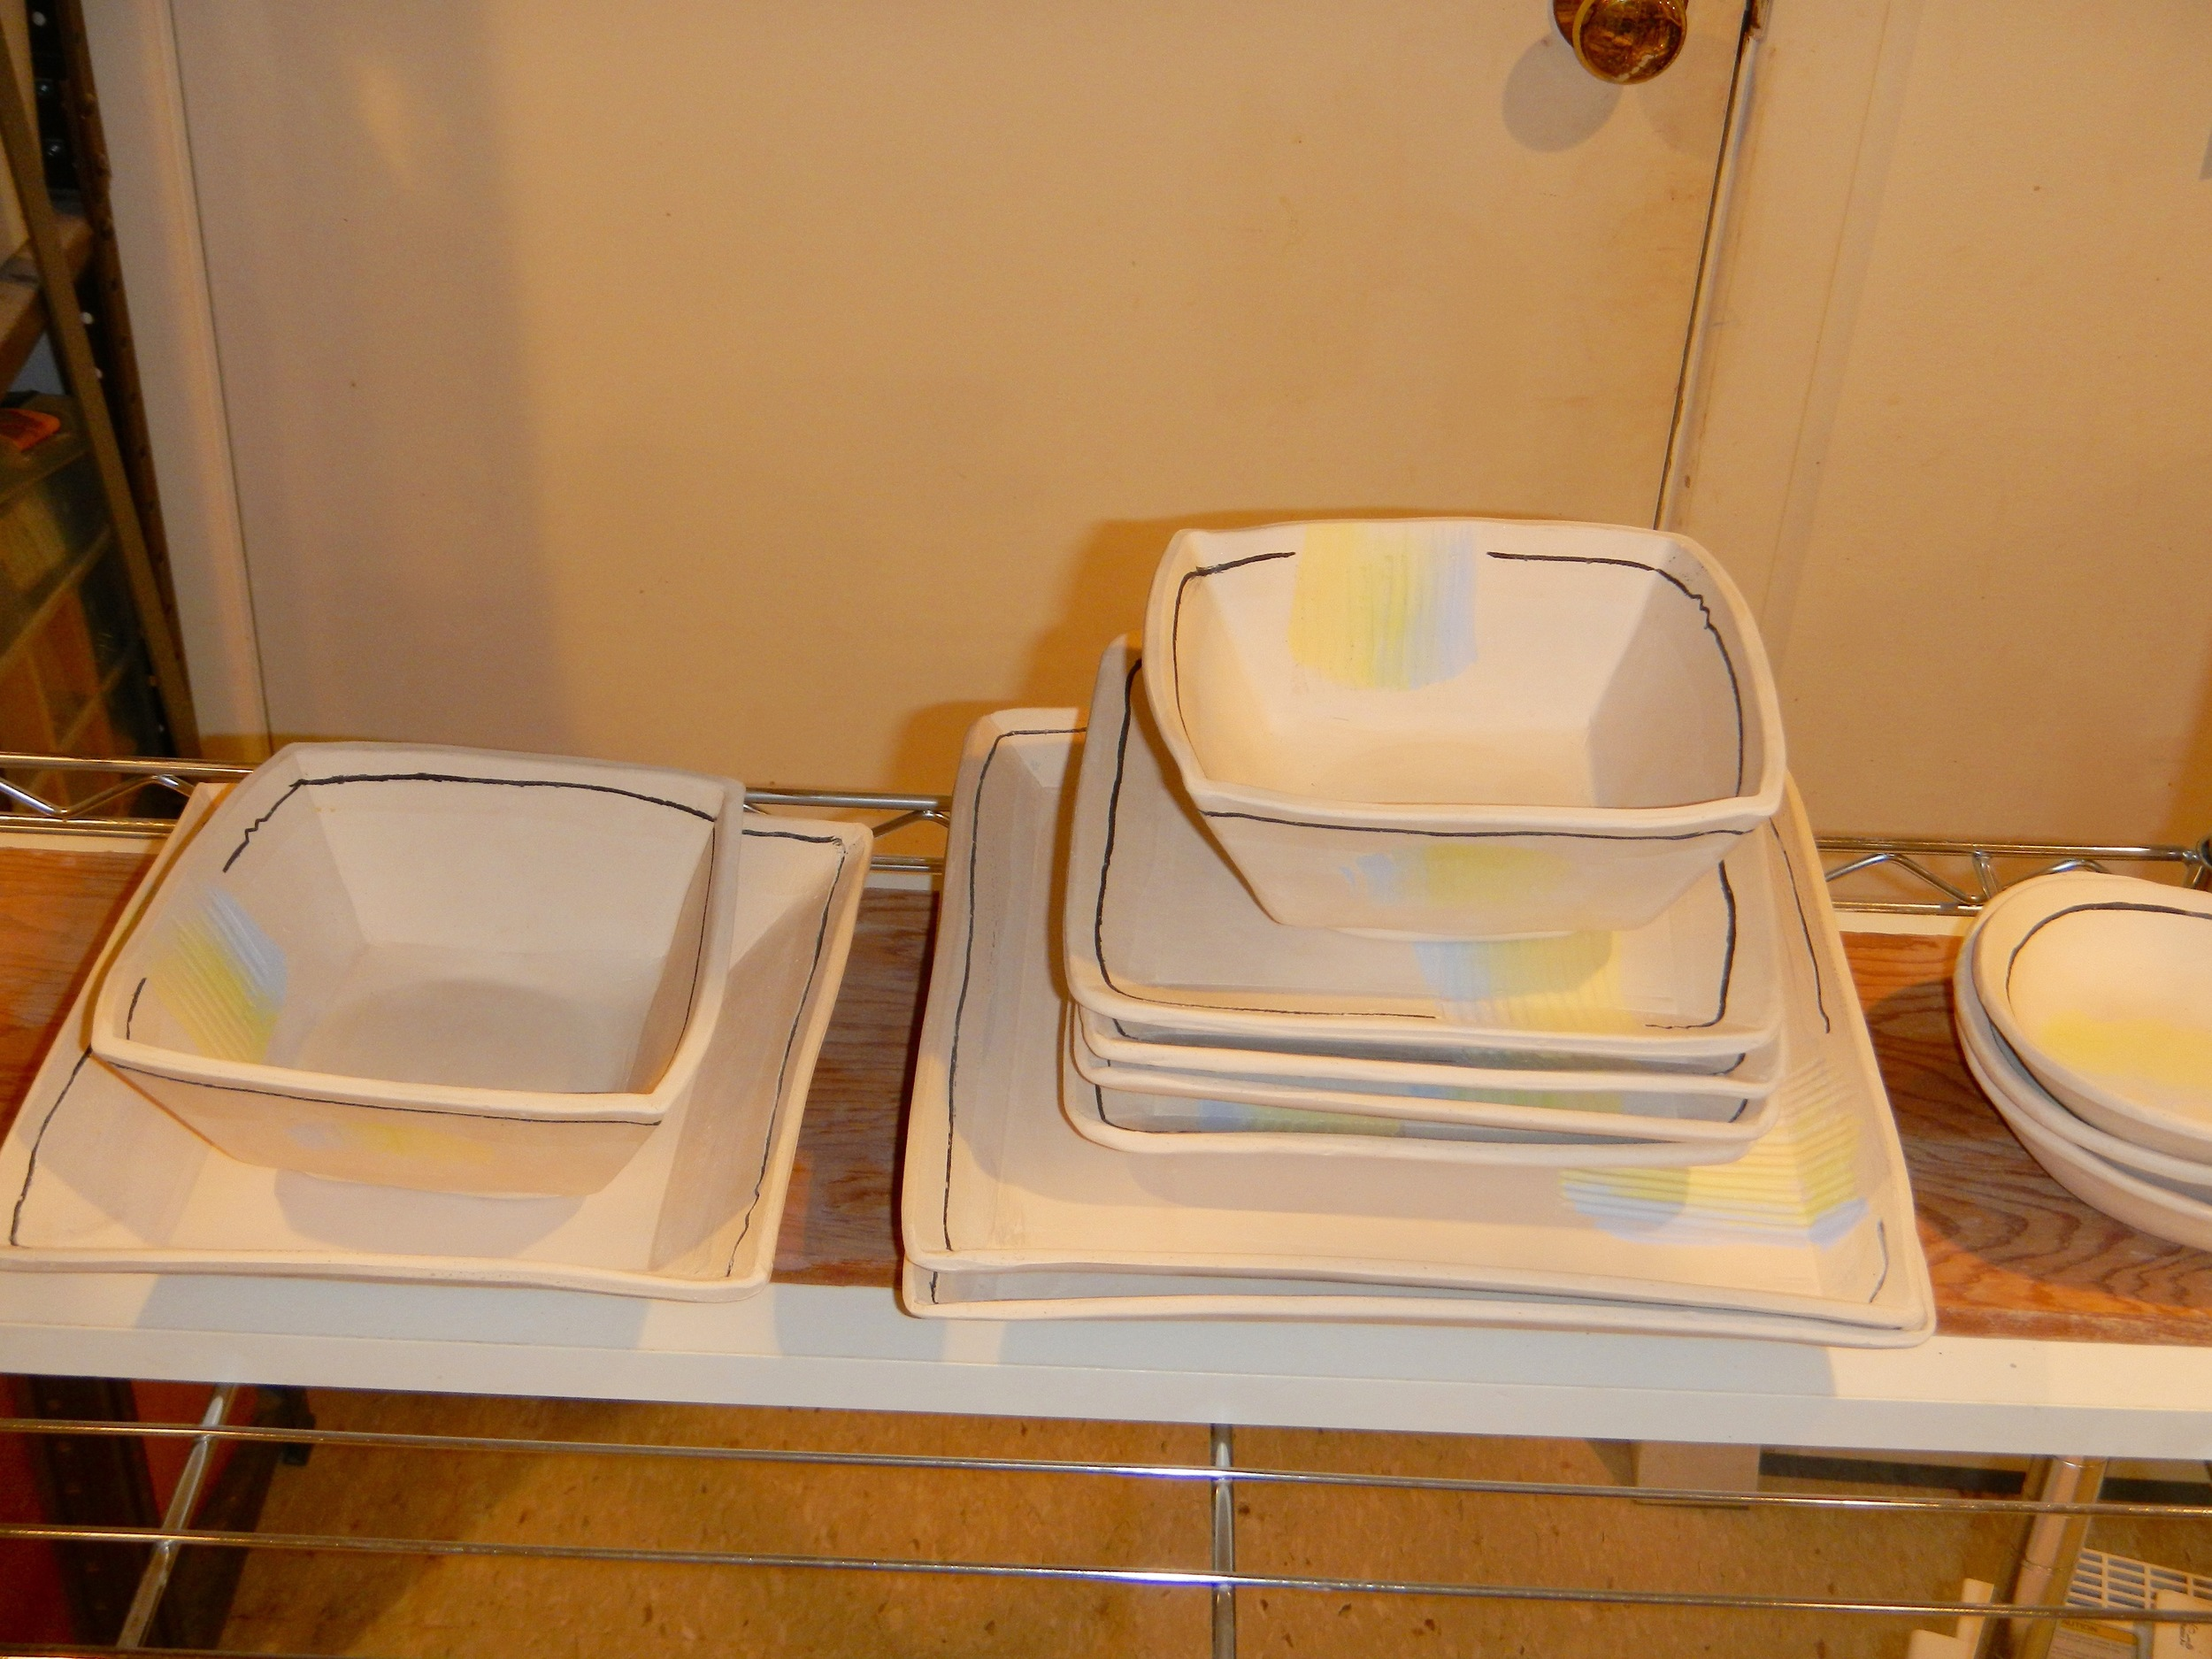 (Dinner plates, salad plates, bowls and one vegetable server, plus a few oval incidental bowls)